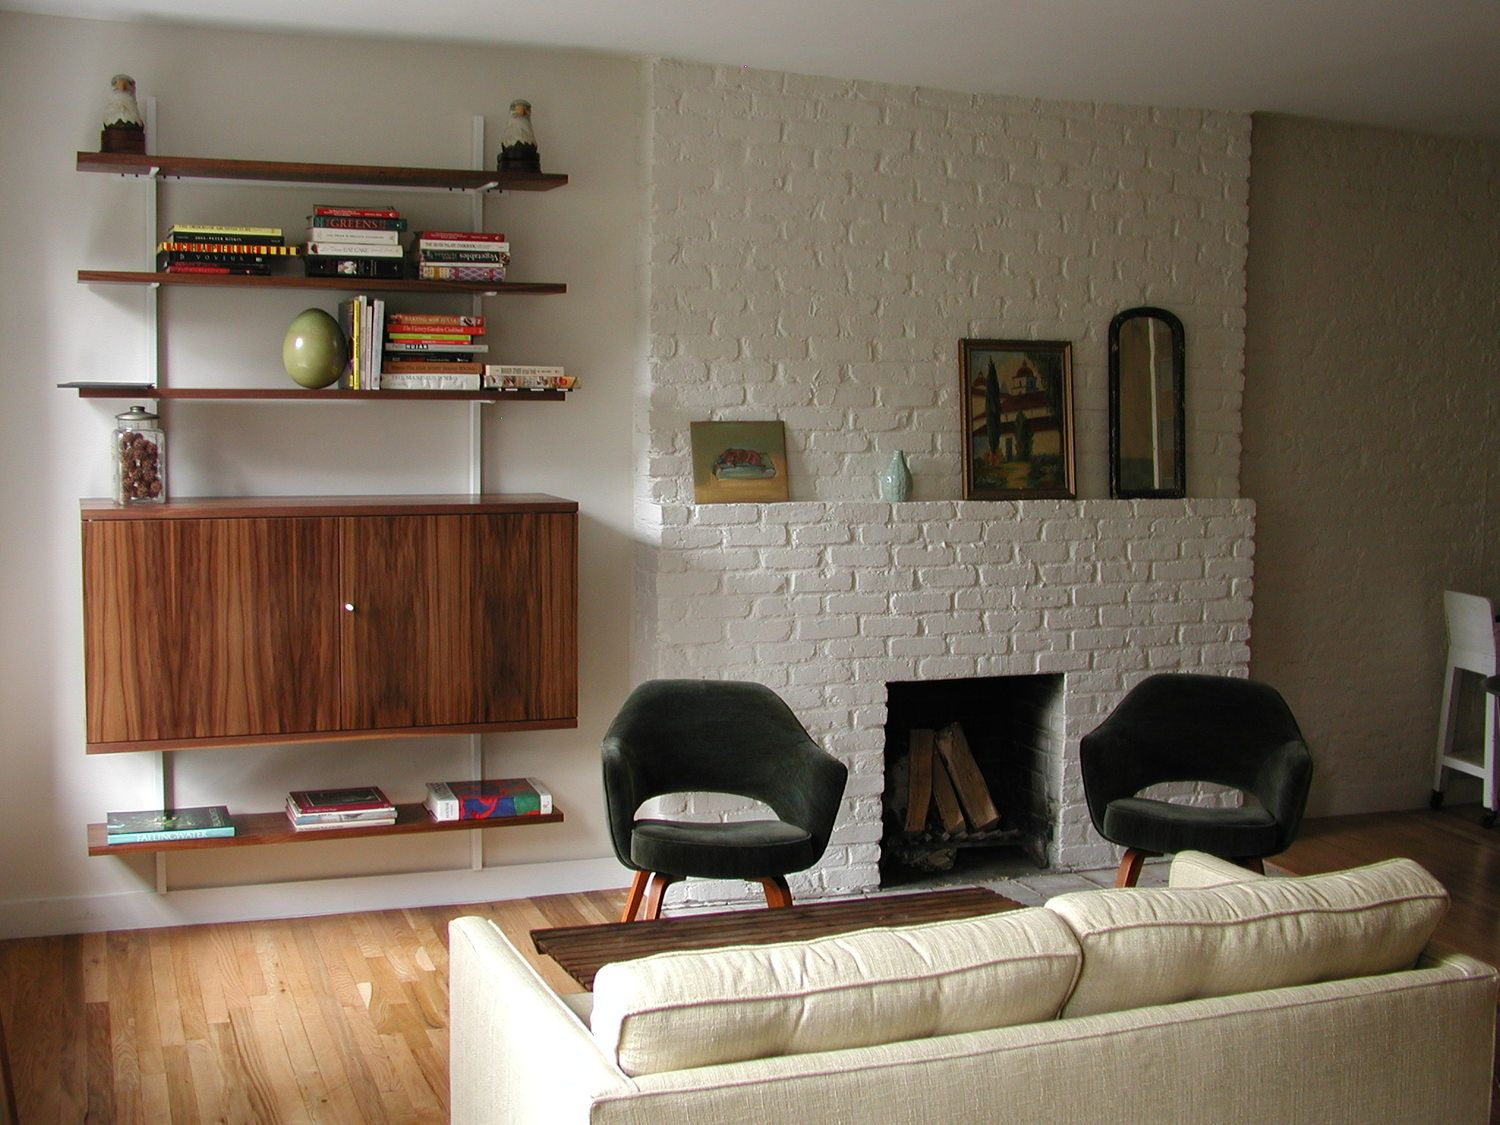 Atlas Industries Interior Design Services Gut Renovation NYC Apartment  Storage Custom Shelving Cabinets Living Room Office